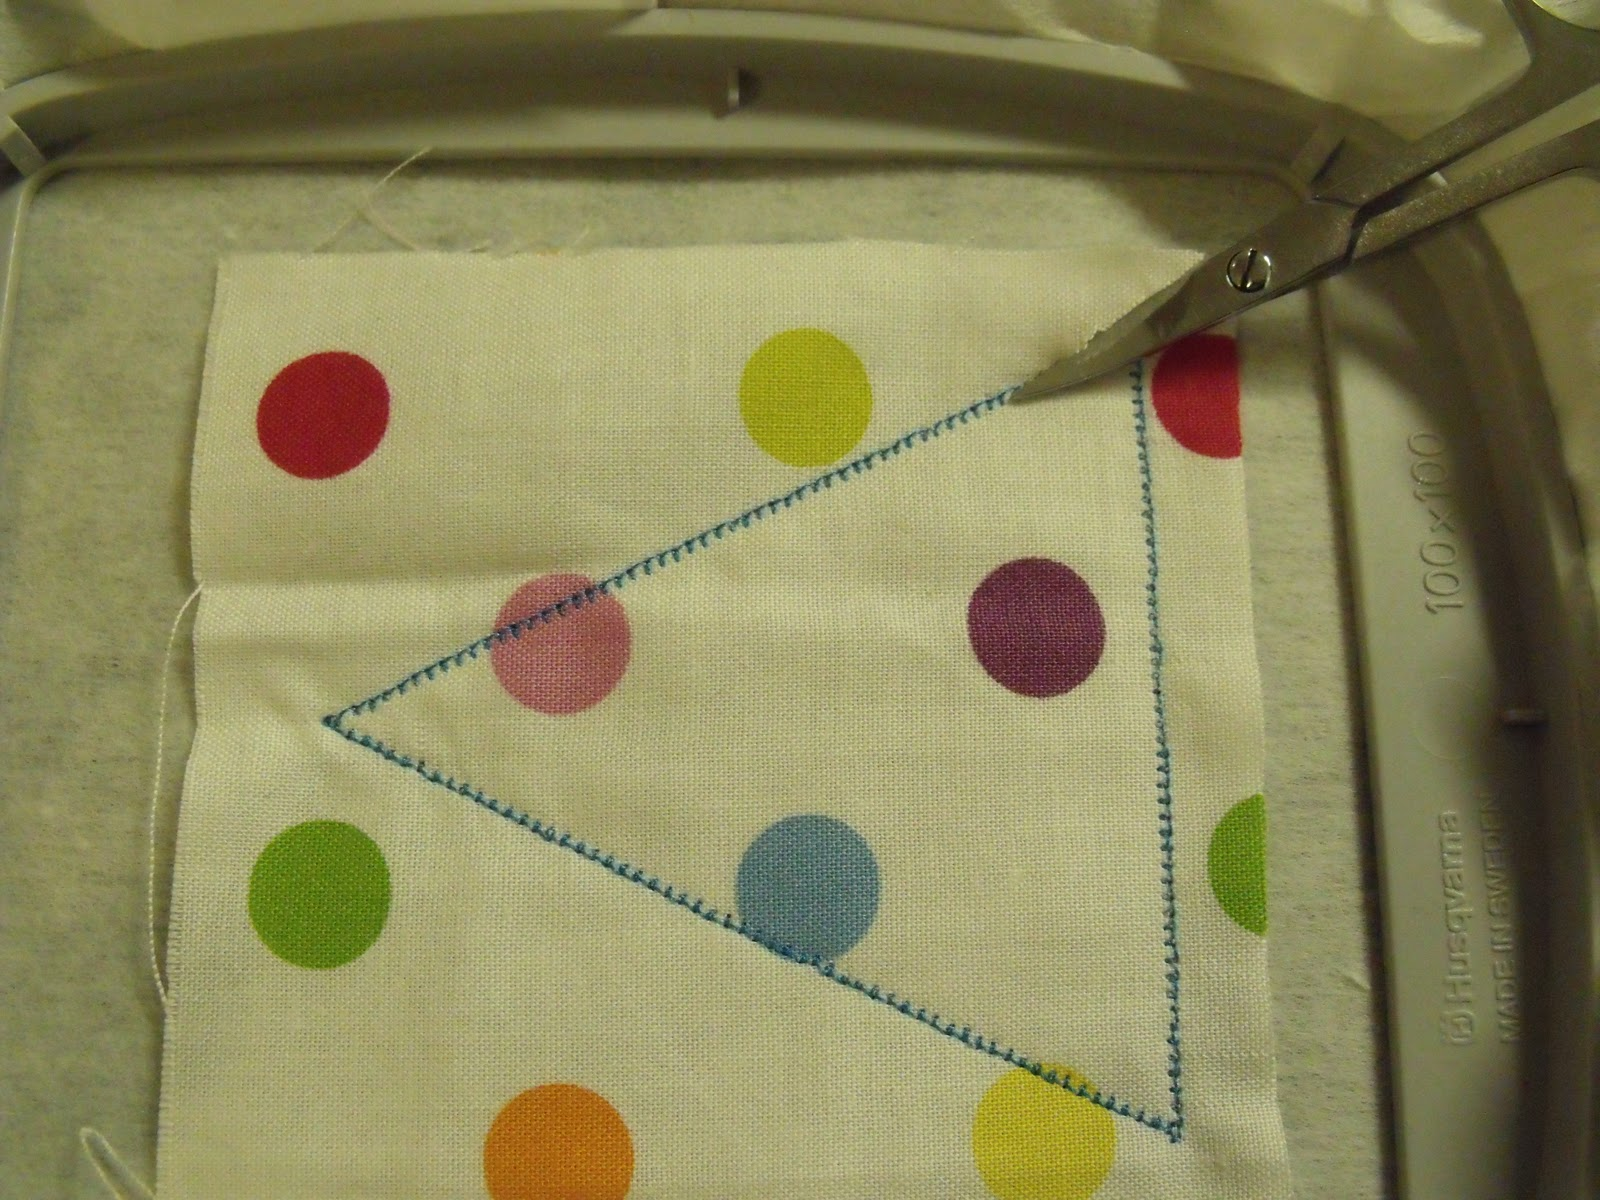 Embroitique how to applique using your embroidery